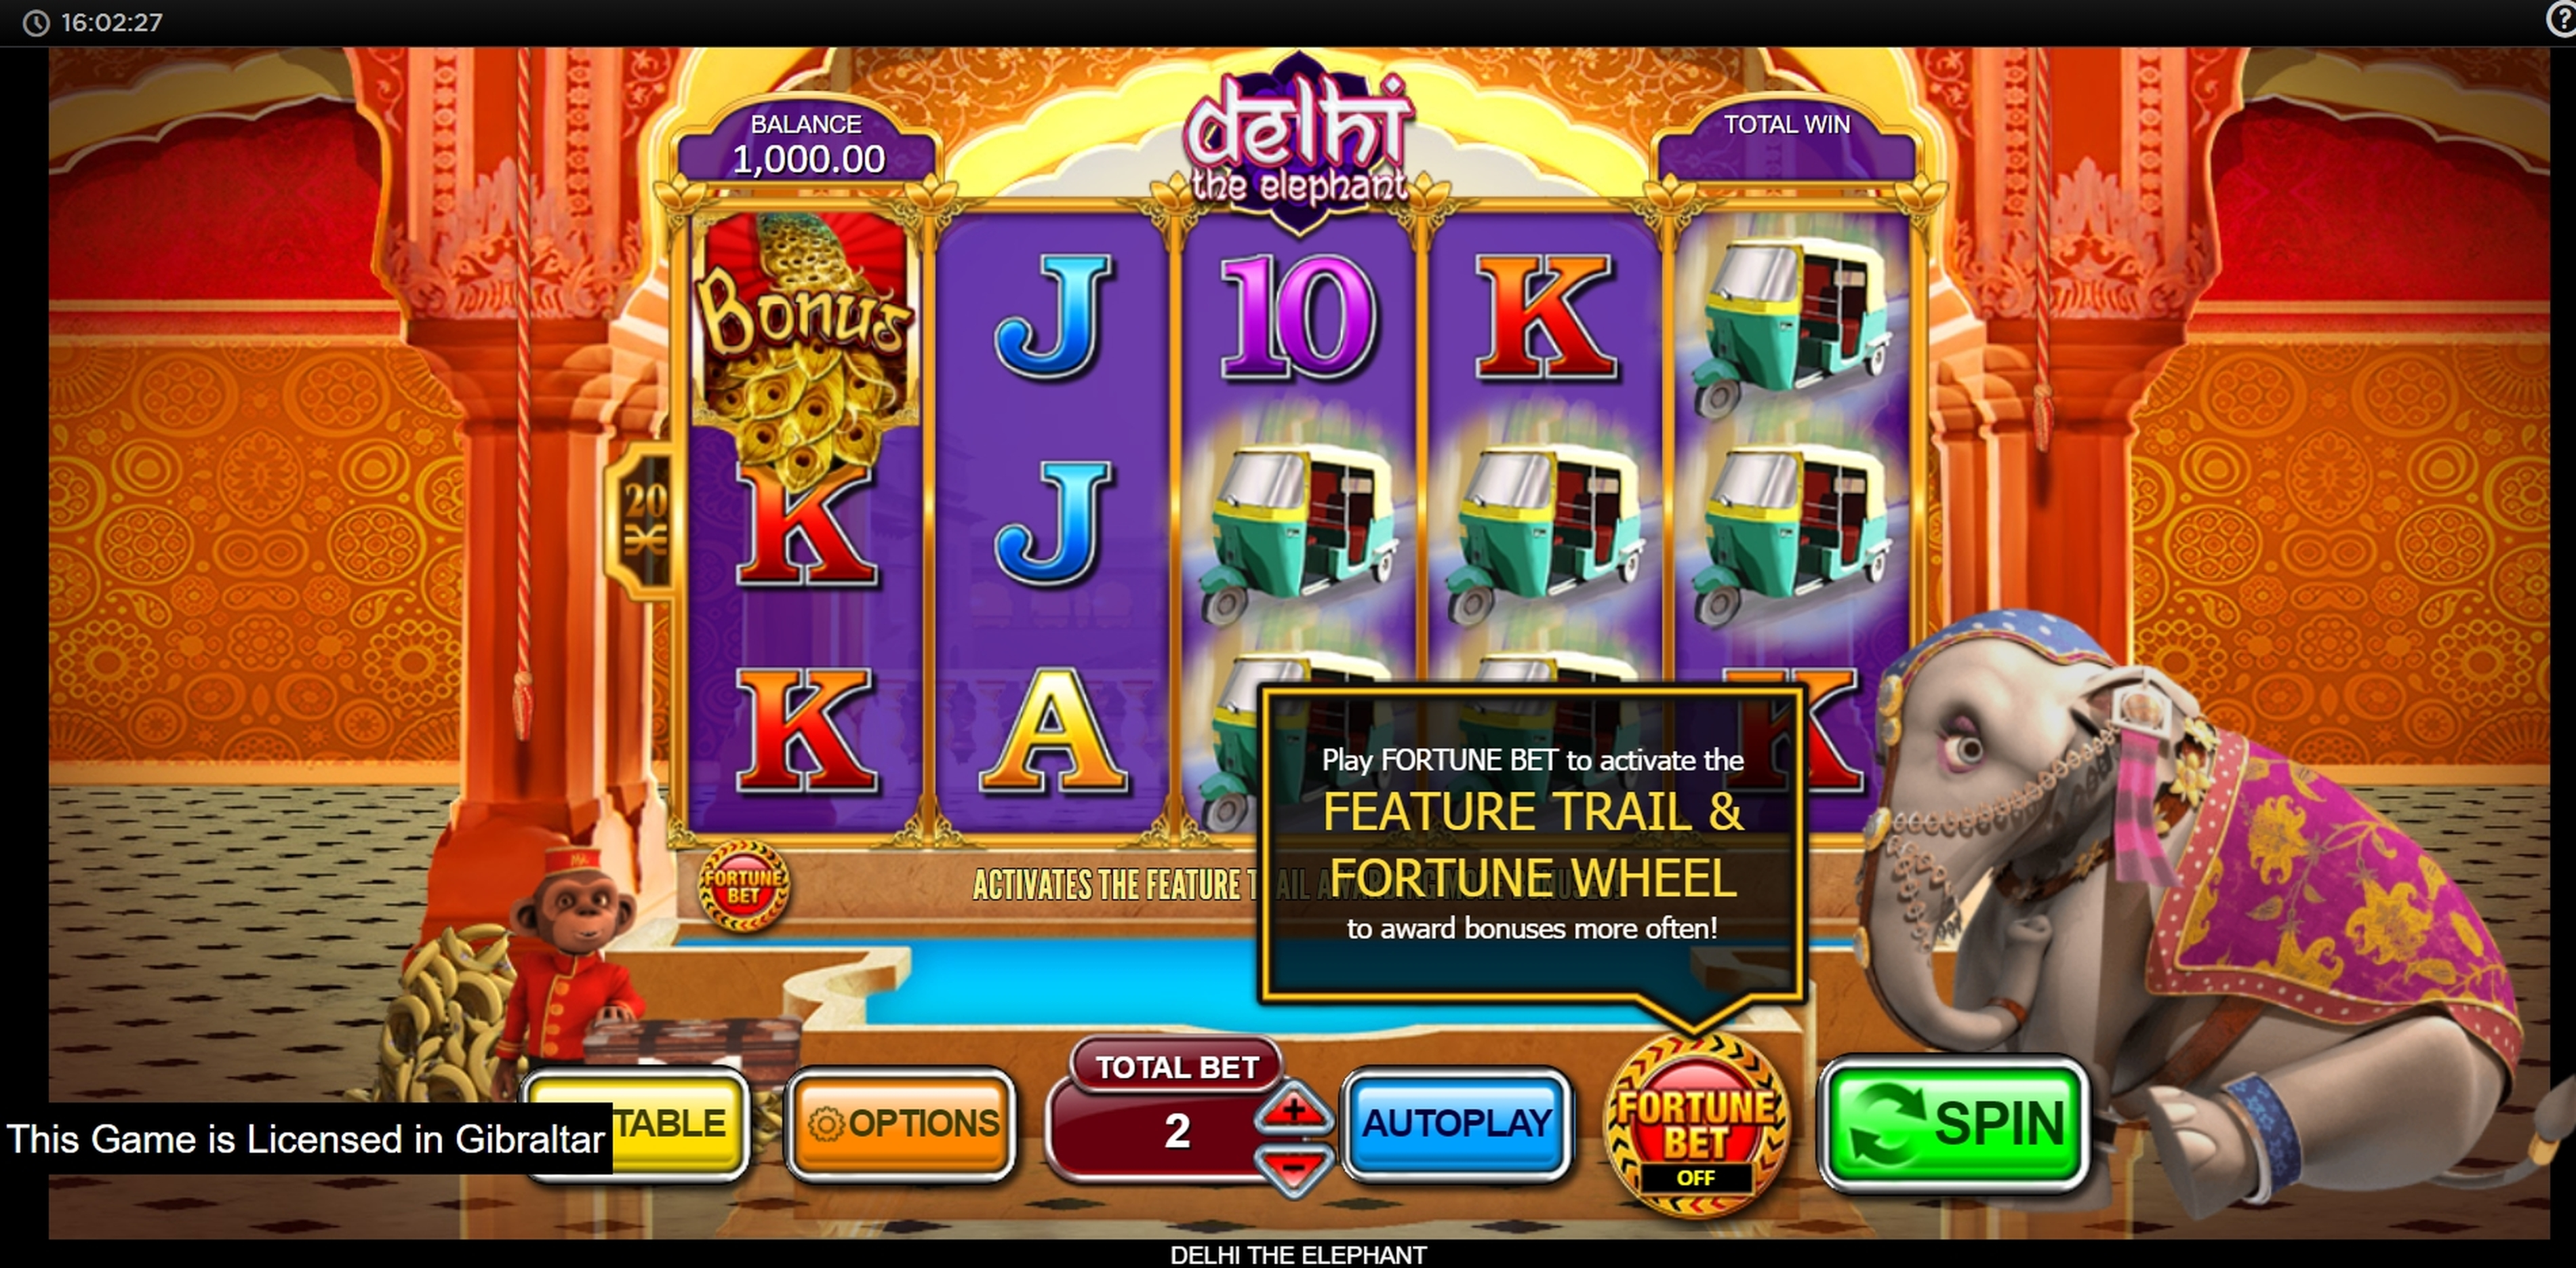 Reels in Delhi the Elephant Slot Game by Inspired Gaming